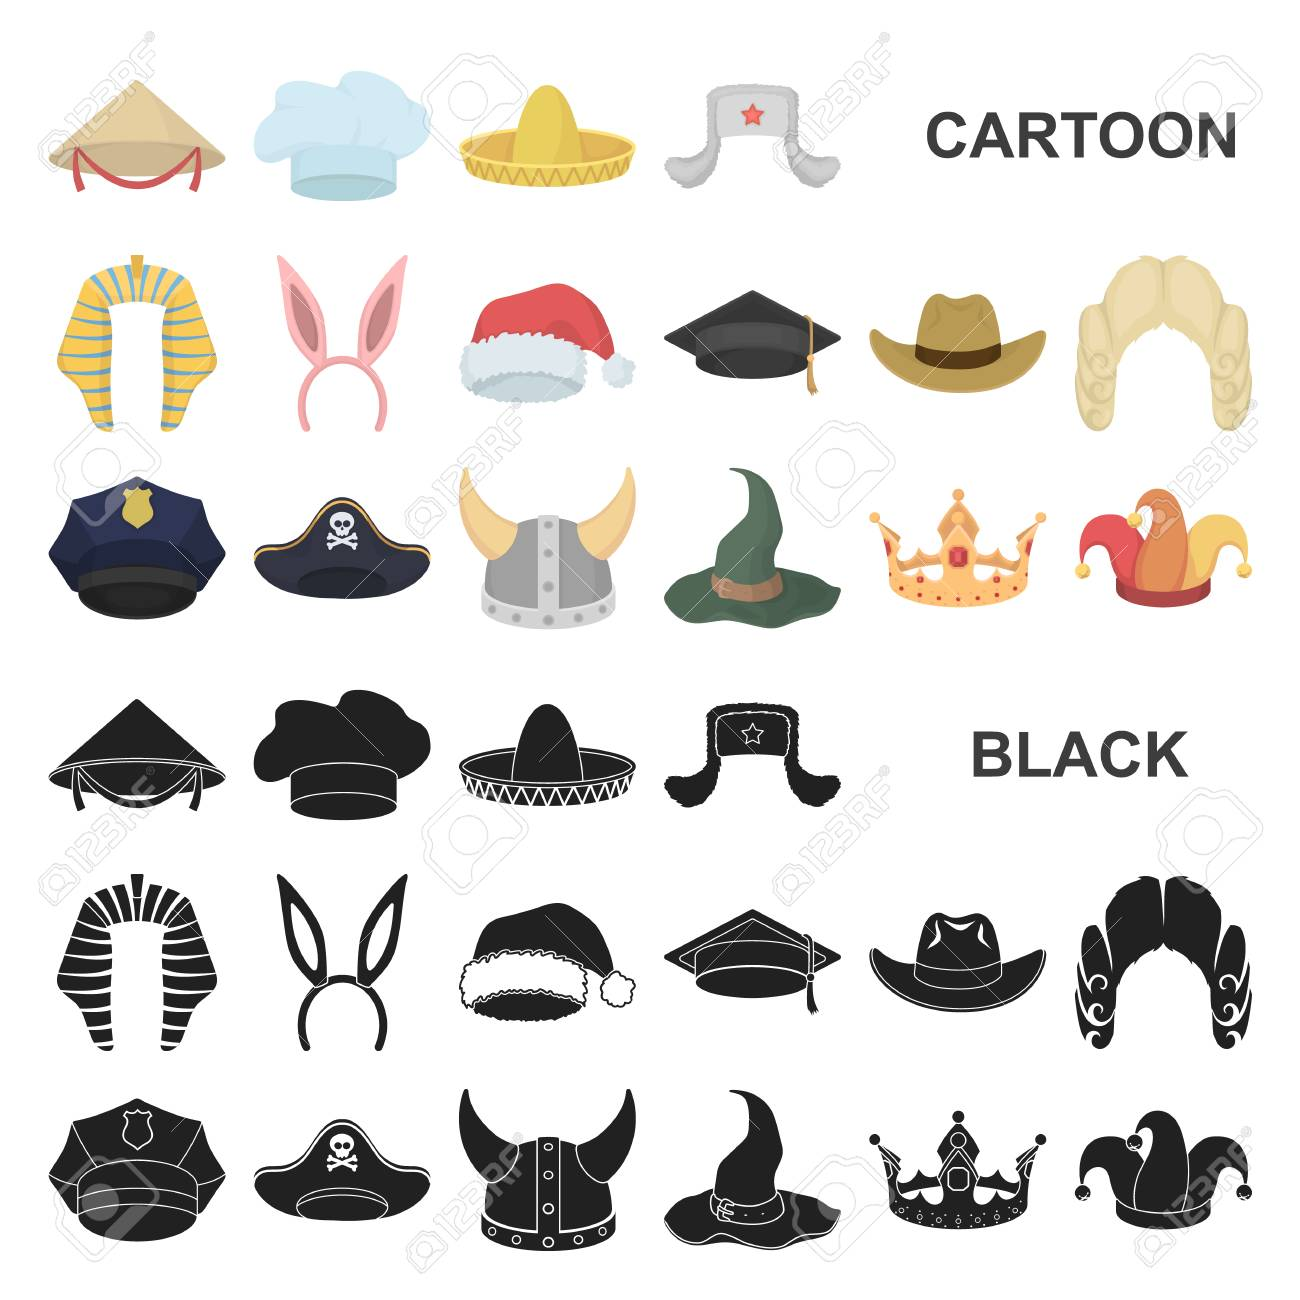 Different Kinds Of Hats Cartoon Icons In Set Collection For Design Headdress Royalty Free Cliparts Vectors And Stock Illustration Image 110263692